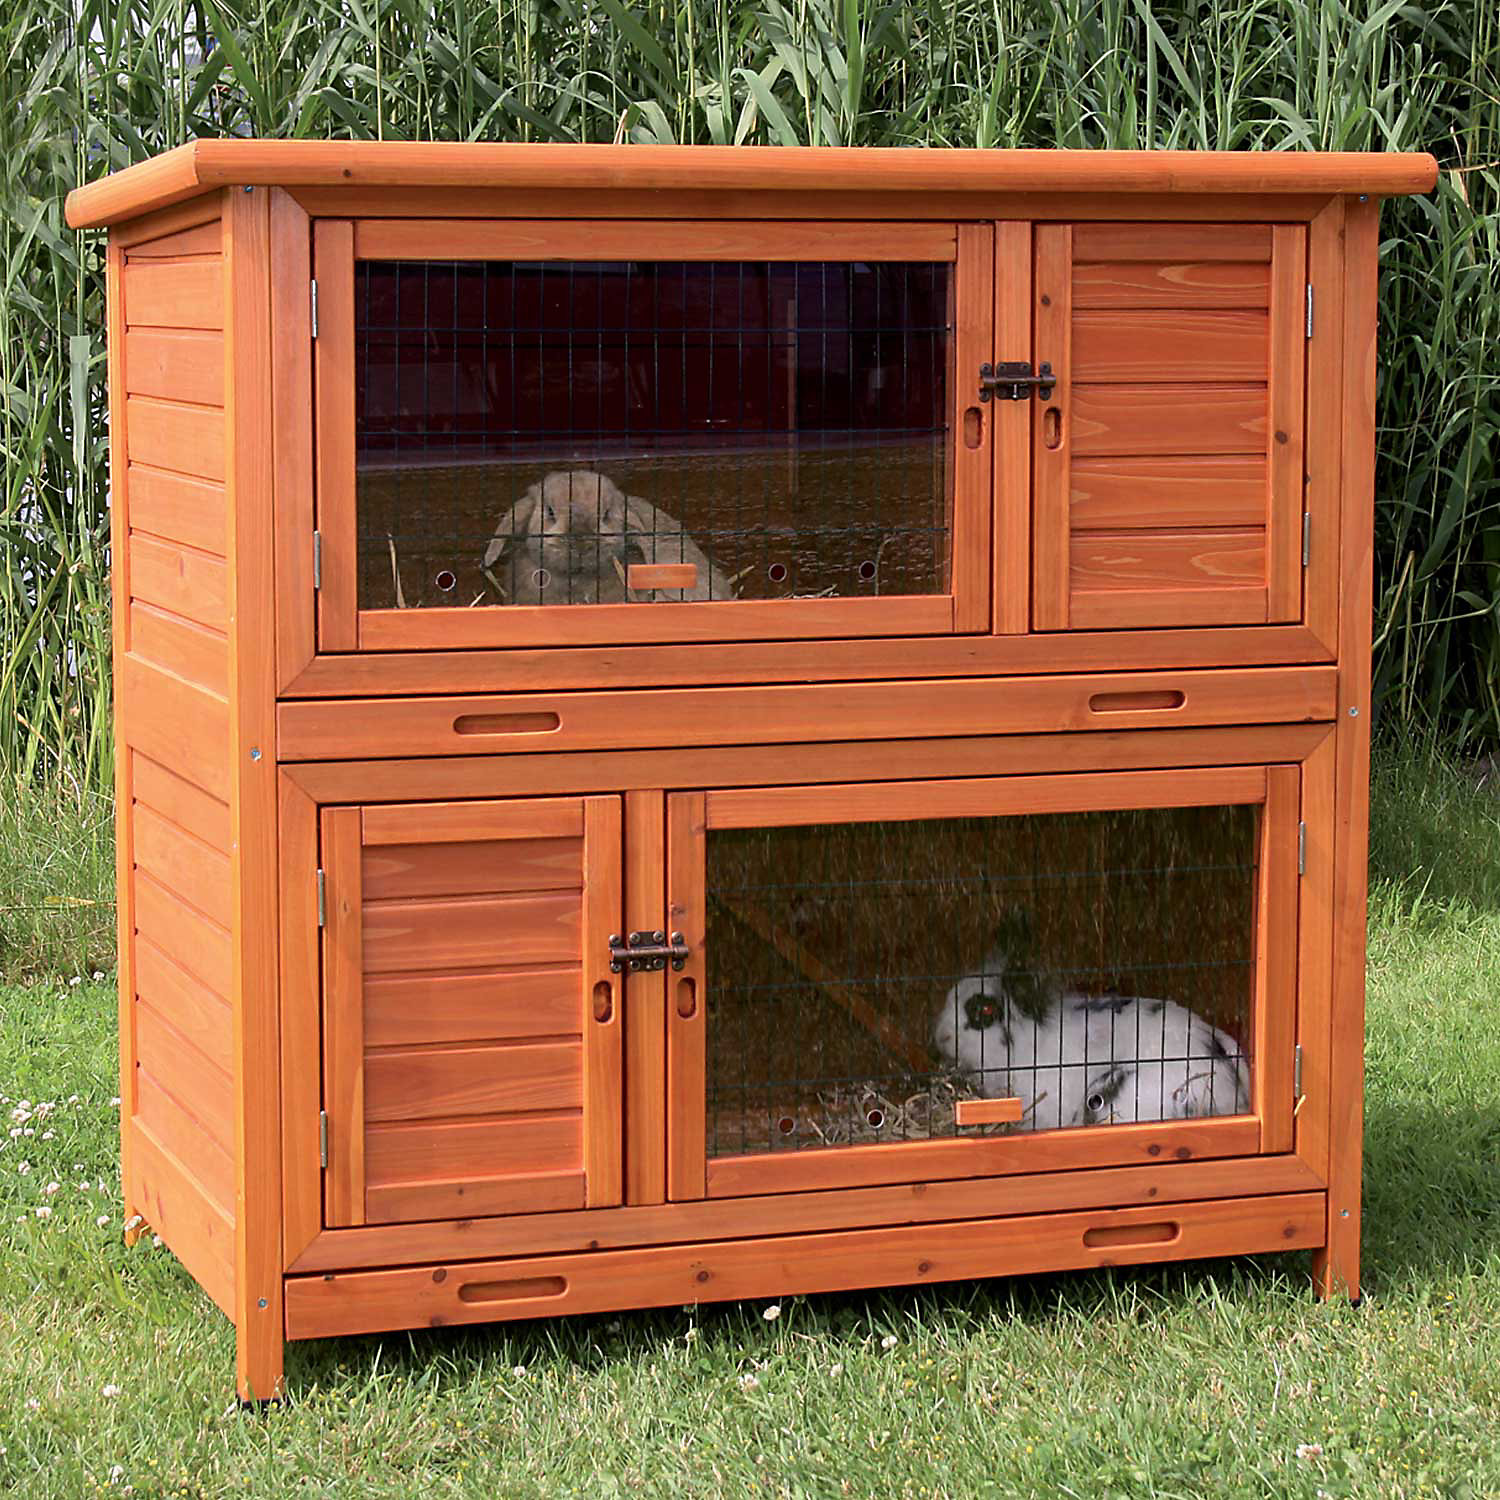 Trixie Natura Insulated Two Story Rabbit Hutch 45.5 L X 44.5 W X 25.5 H Medium Brown